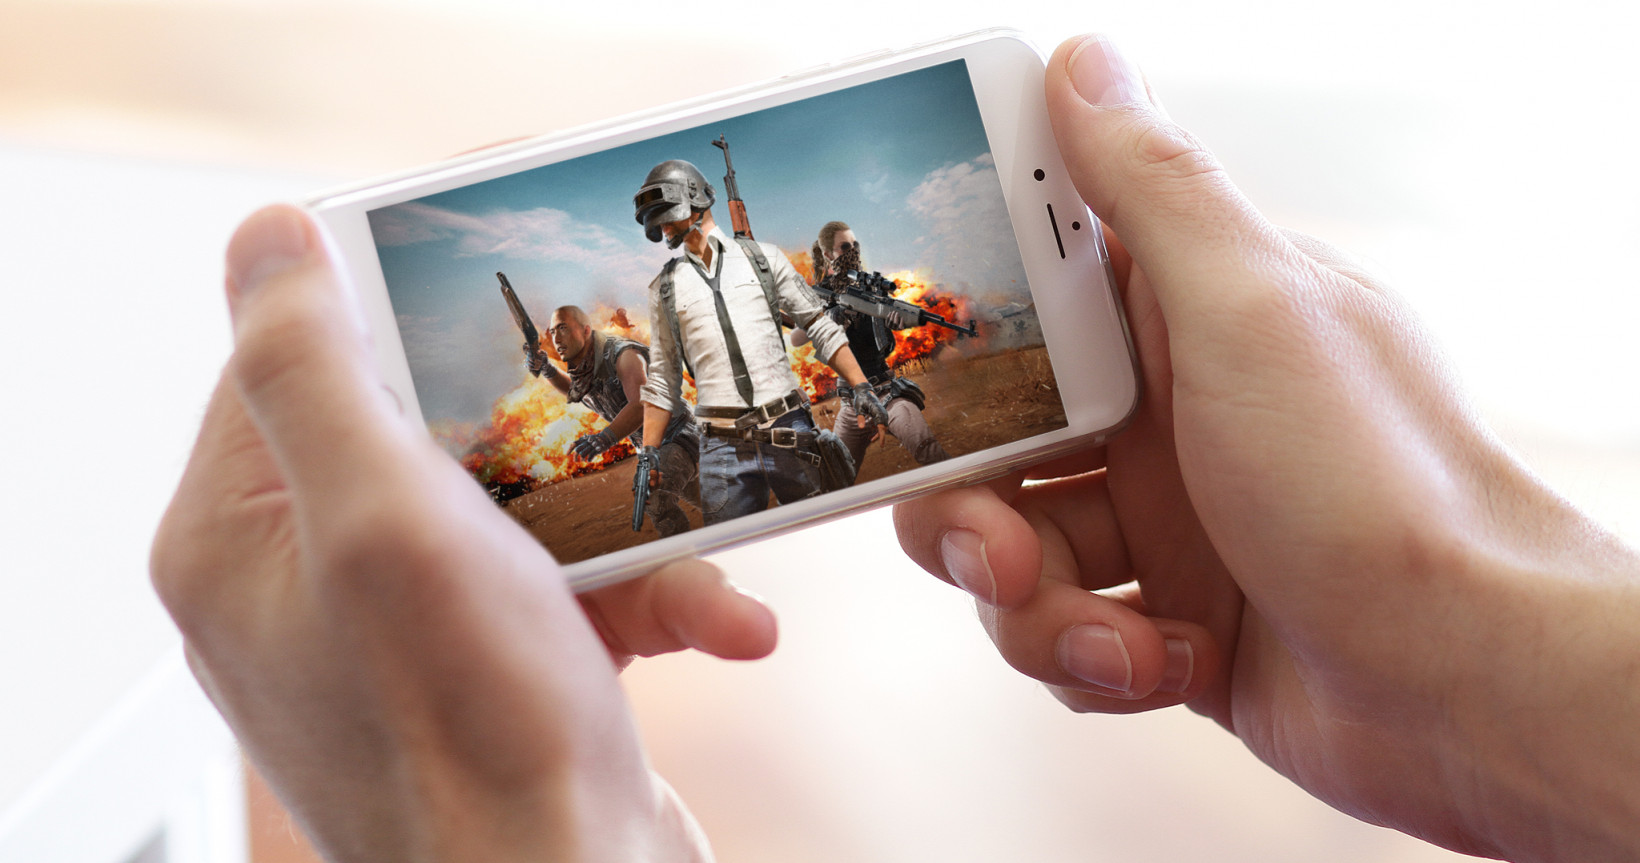 A man in India reportedly kills father who refused to let him play PUBG